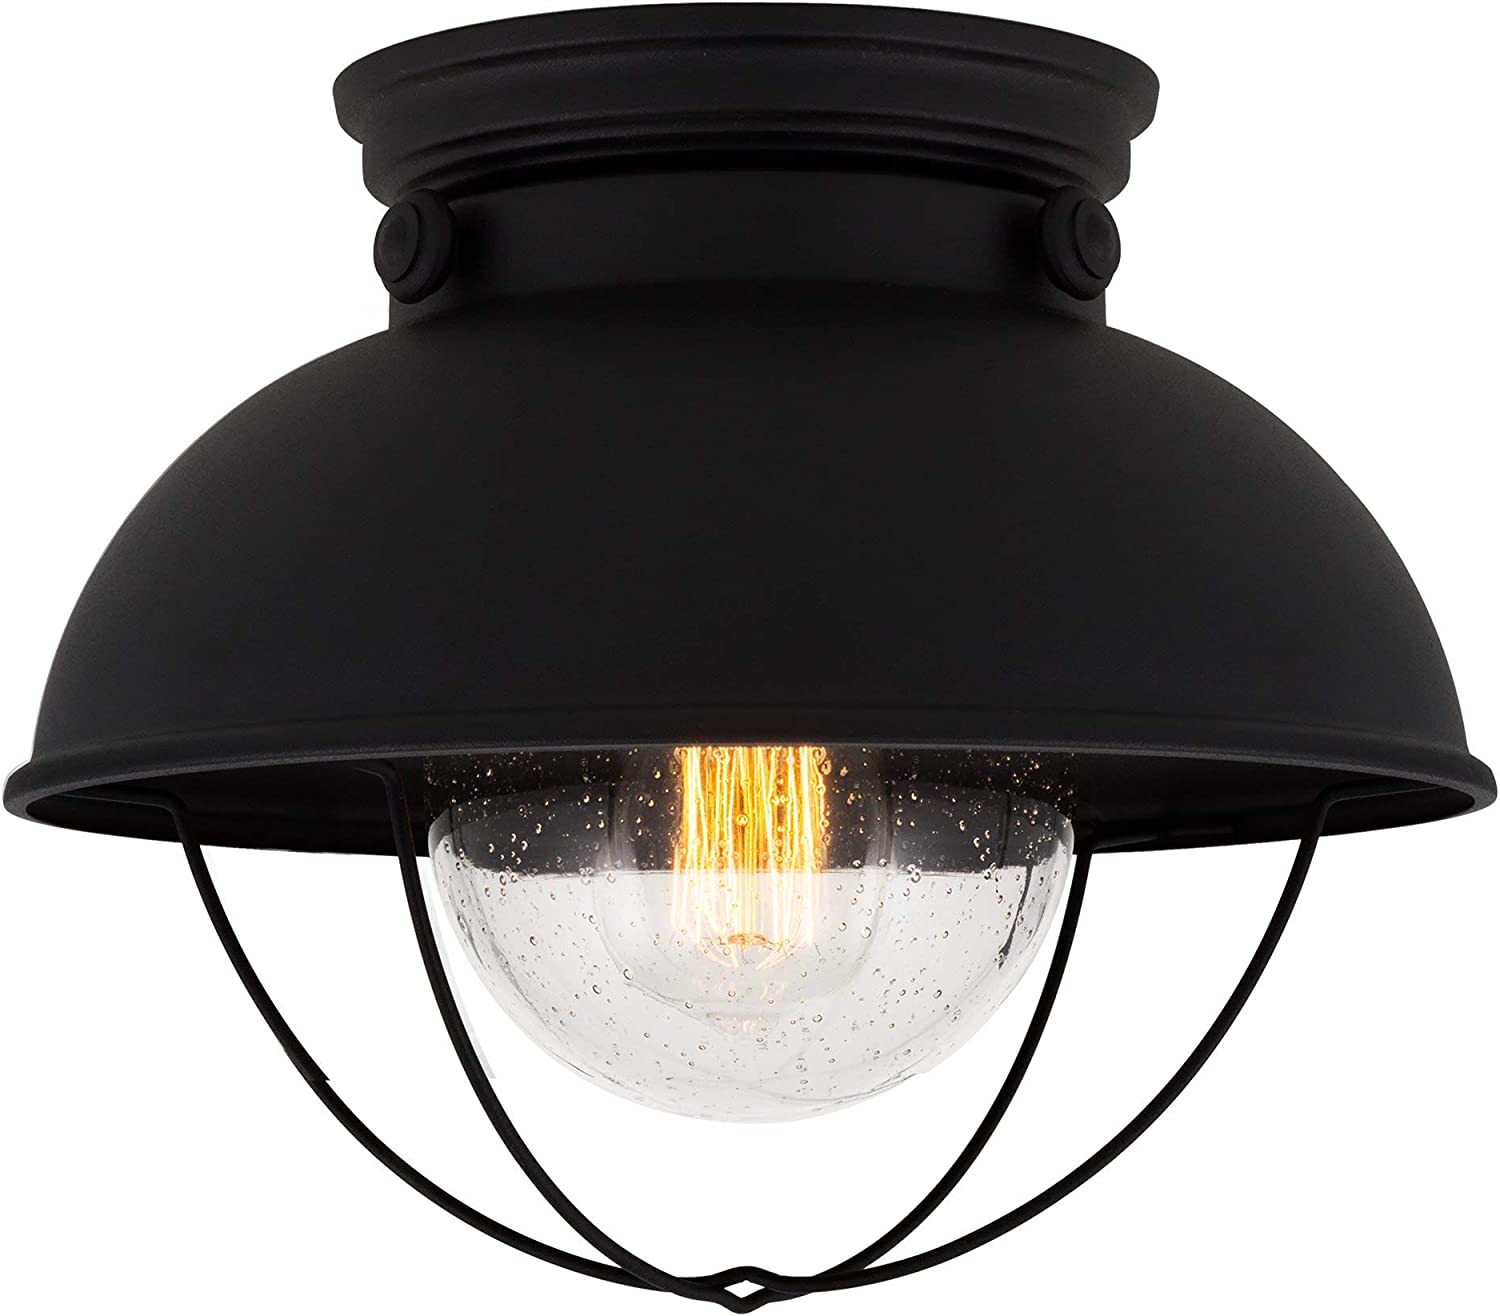 Kira Home Bayside 11  Industrial Farmhouse Flush Mount Ceiling Light + Seeded Glass Shade, Matte Black Finish